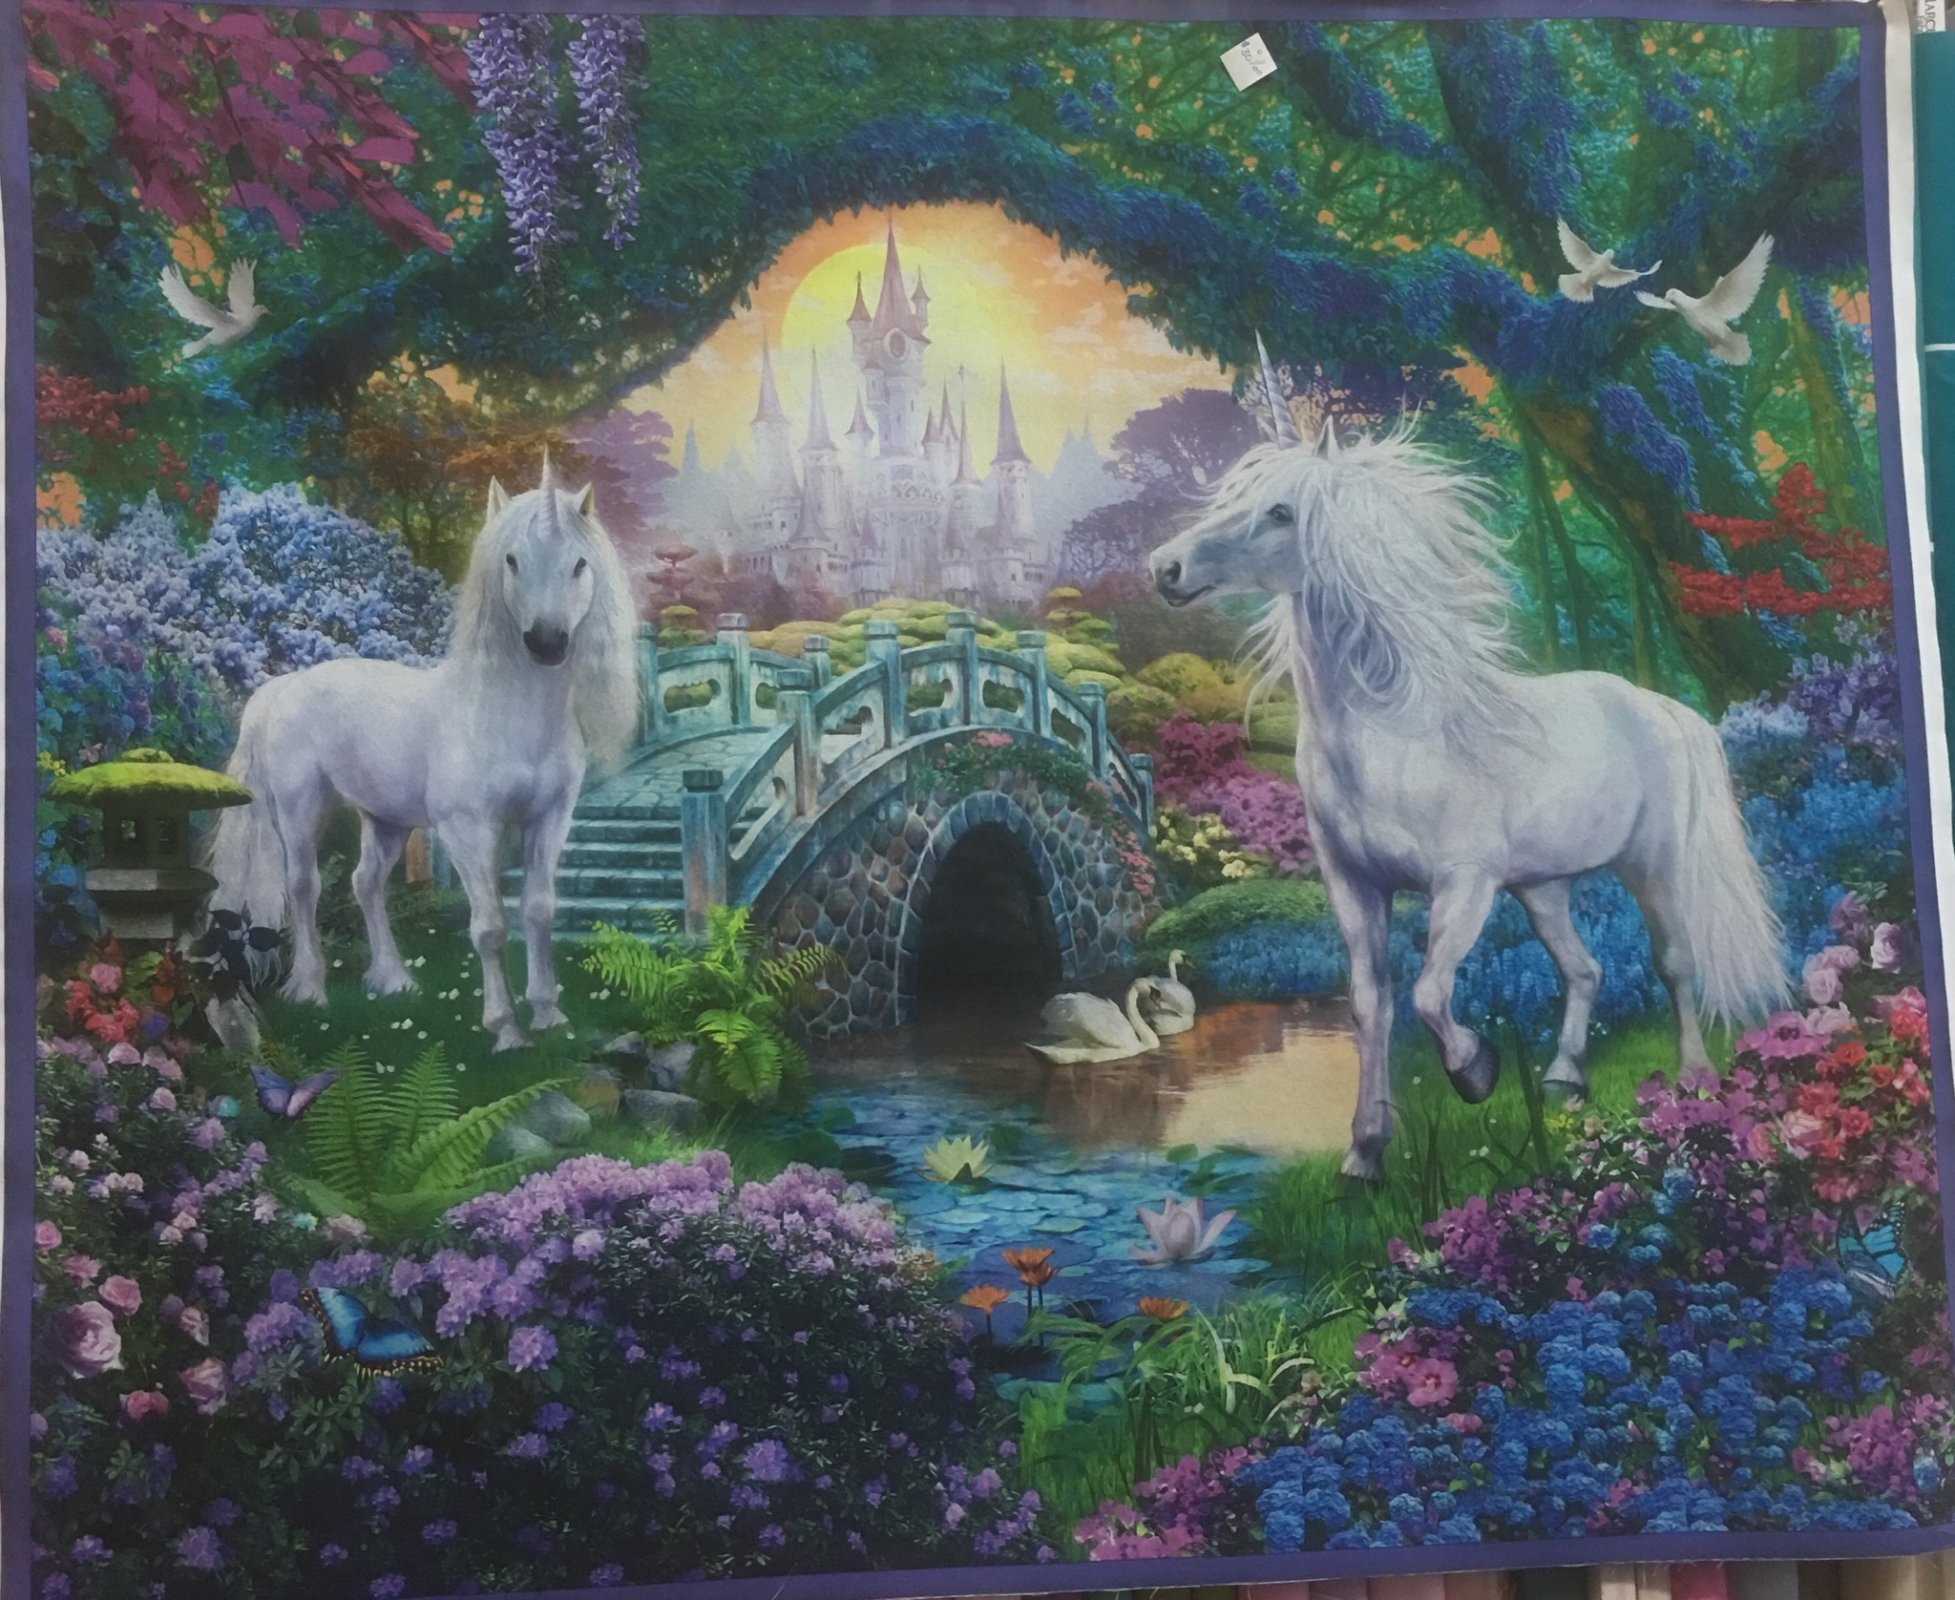 Unicorns in fantasyland